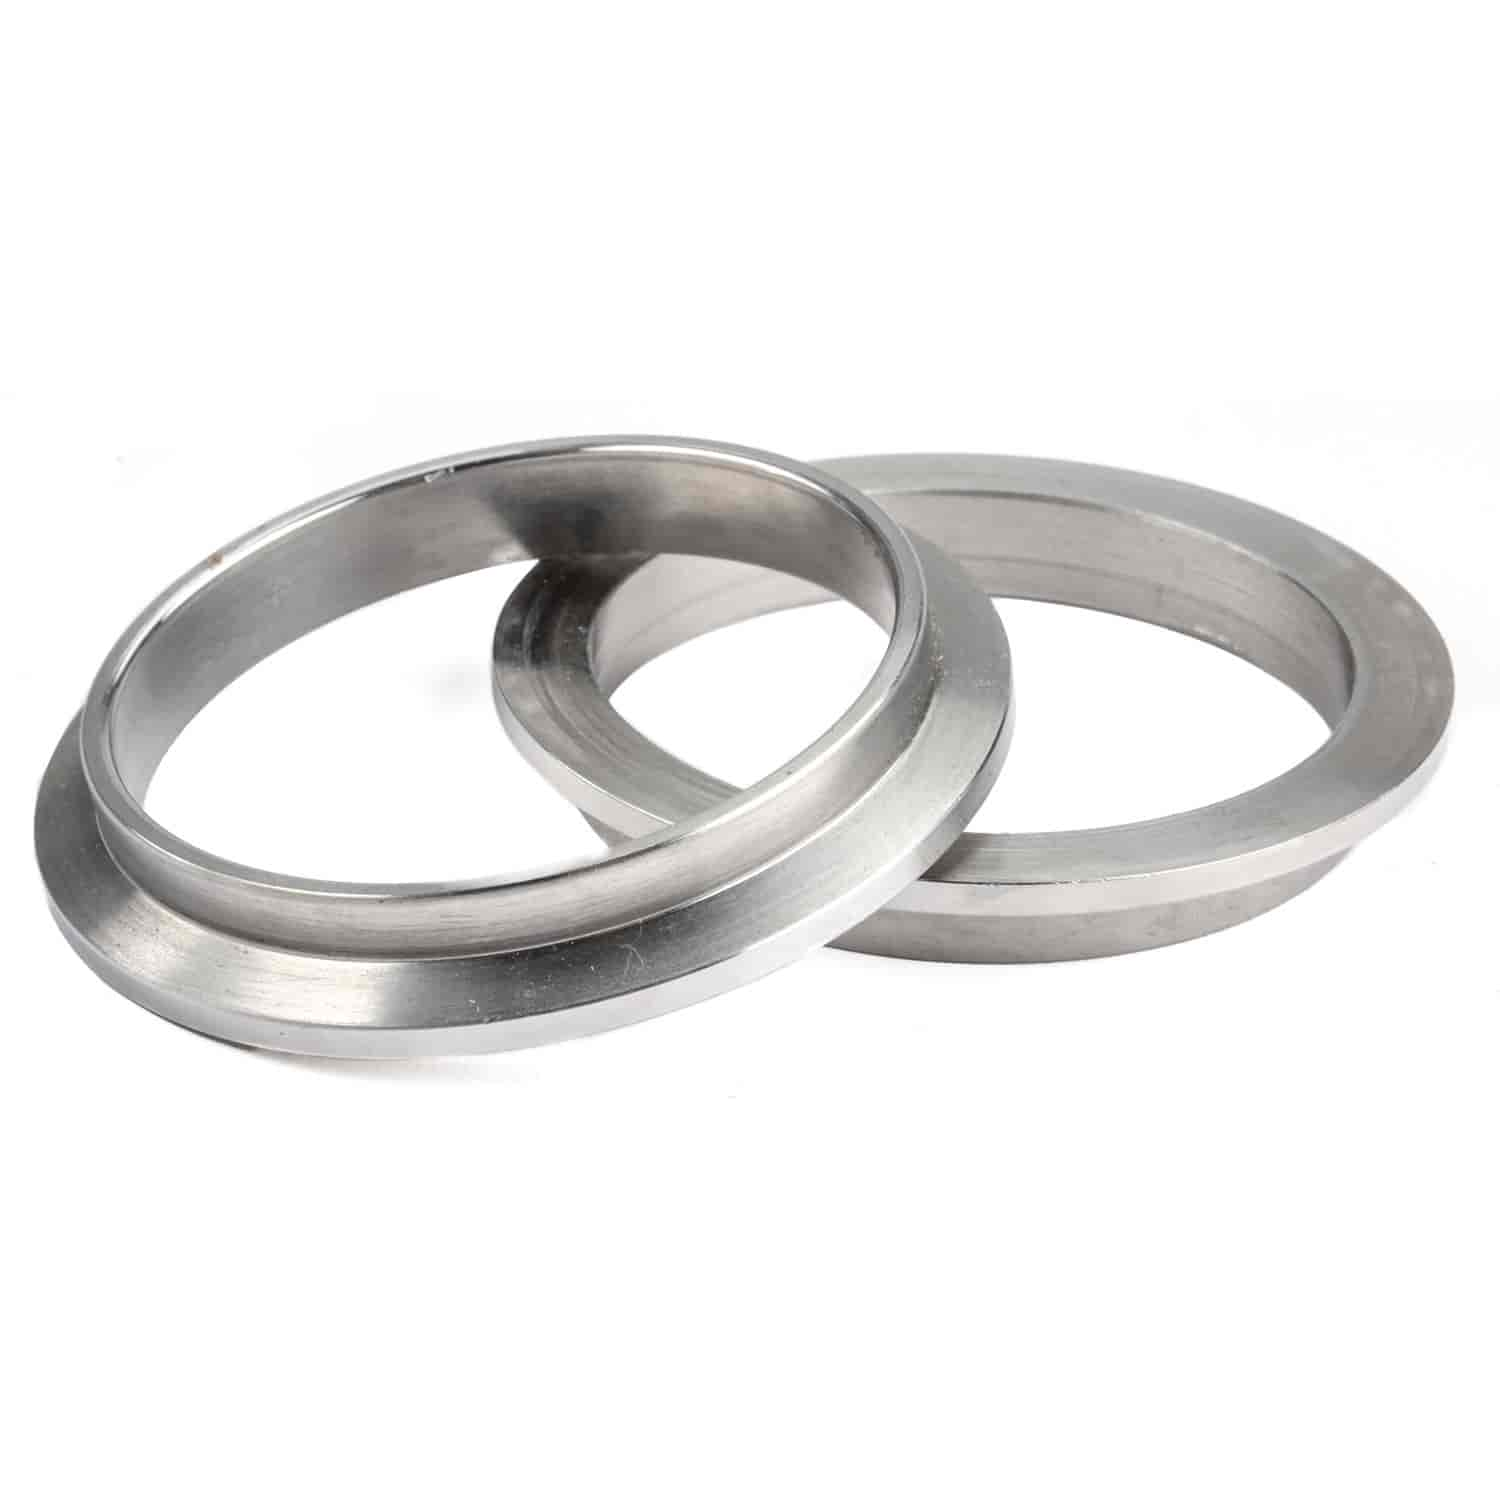 JEGS Performance Products 30873 - JEGS Stainless Steel V-Band Clamps with Steel Collars